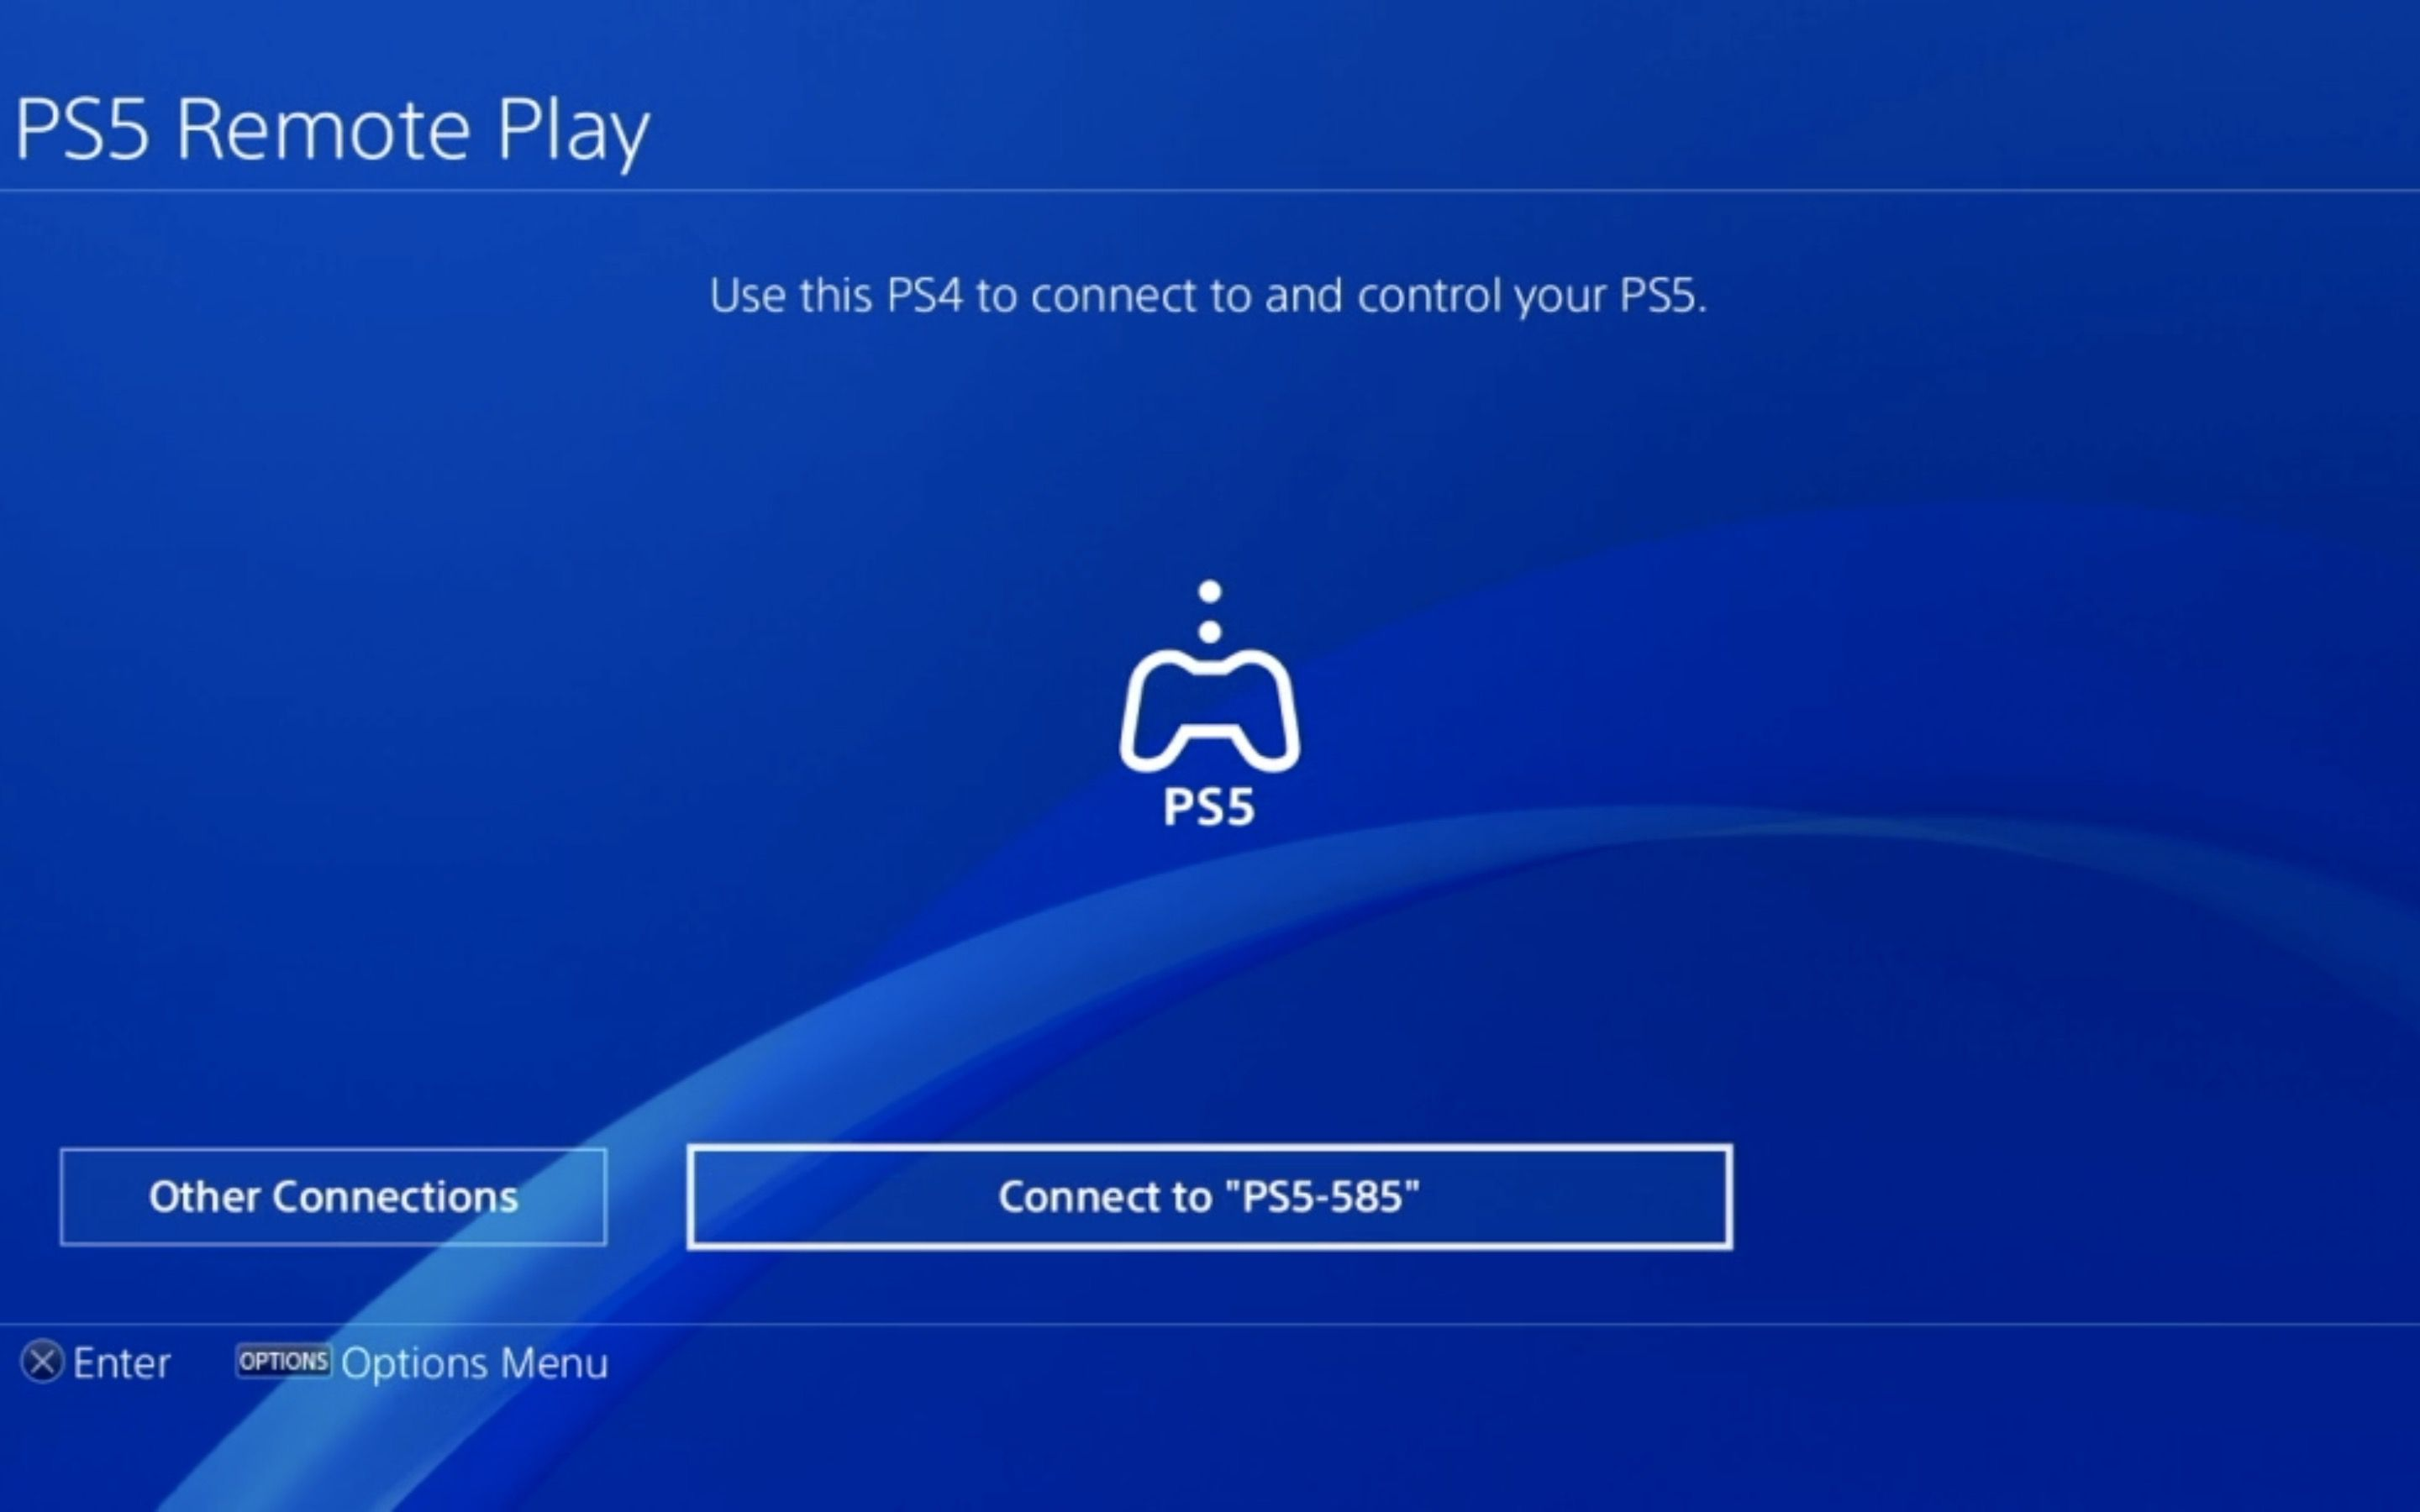 The Connection screen in PS5 Remote Play